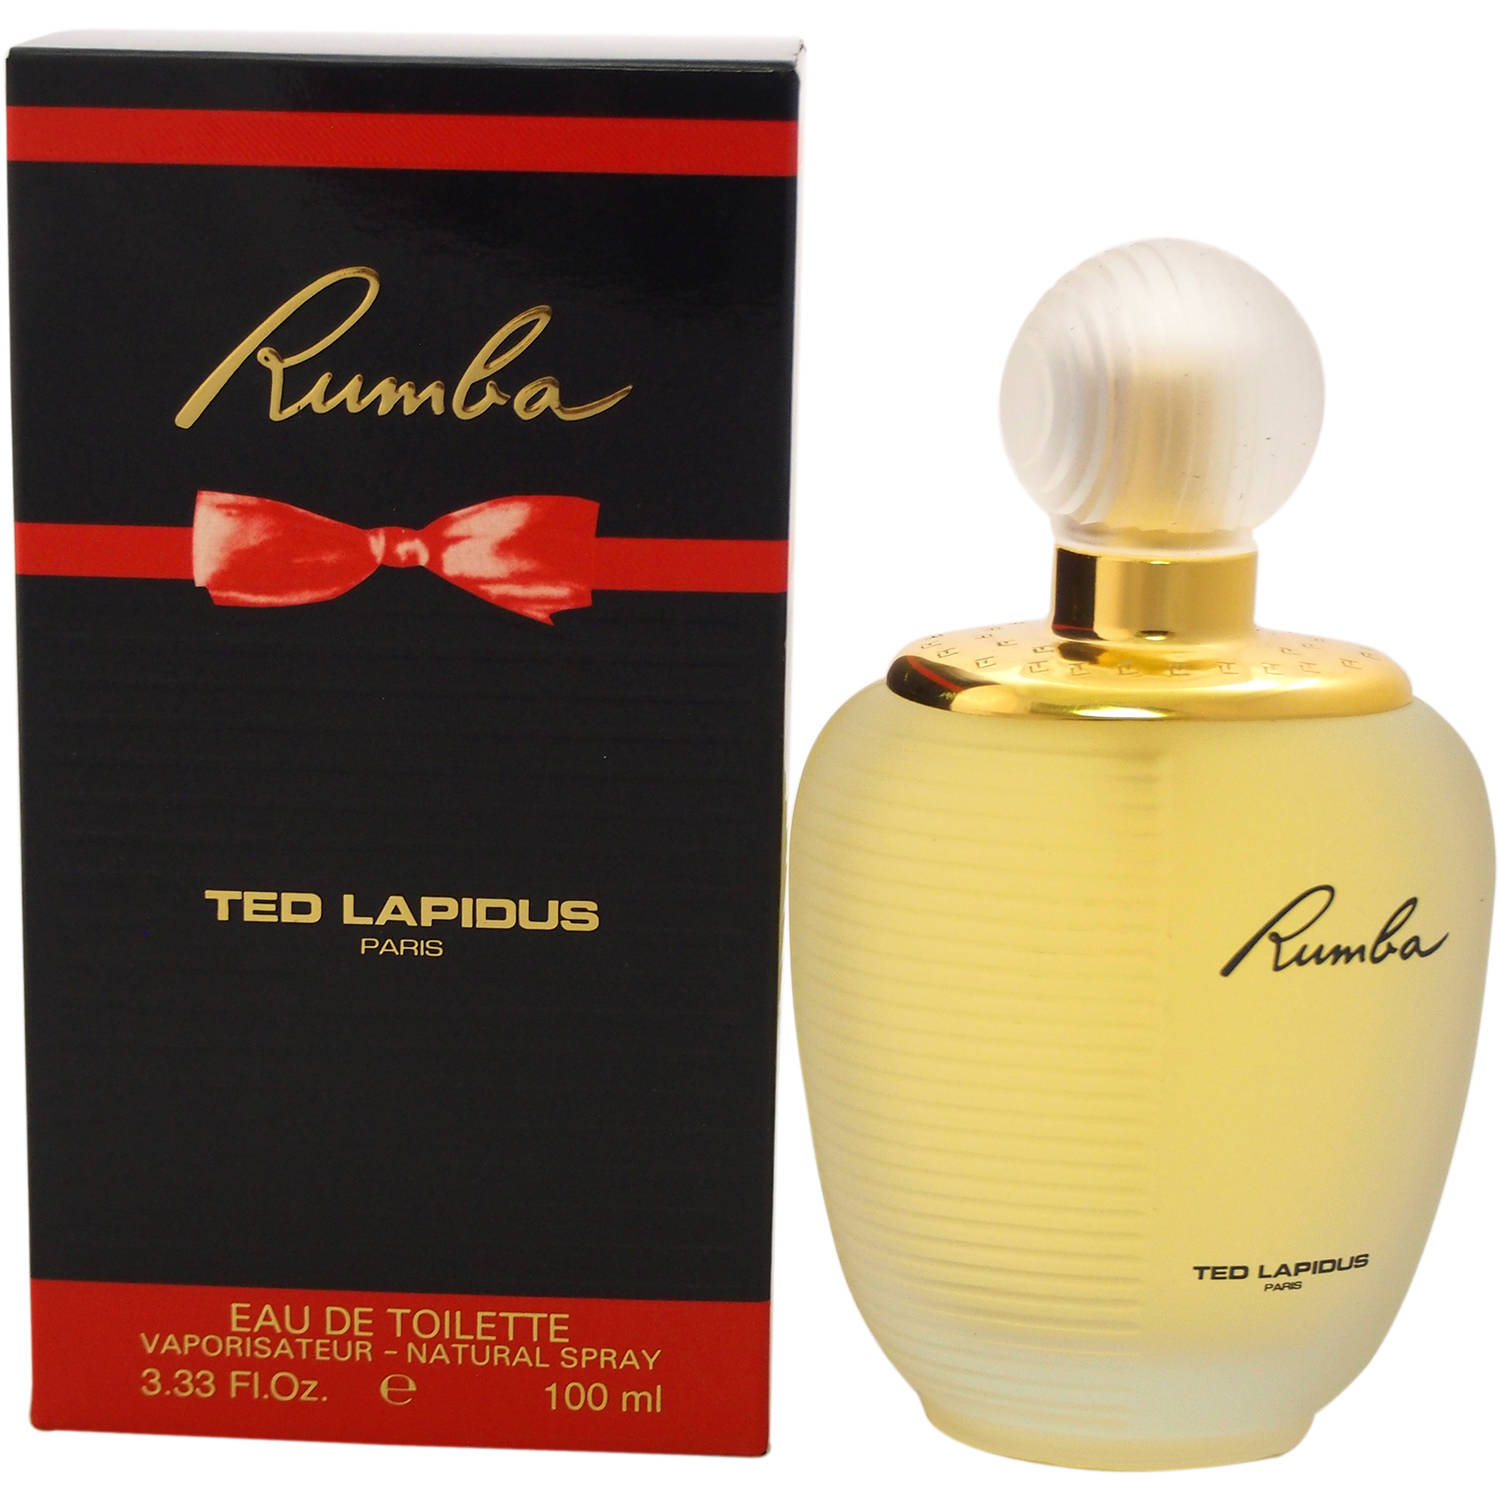 Rumba for Women by Ted Lapidus 3.3 oz EDT